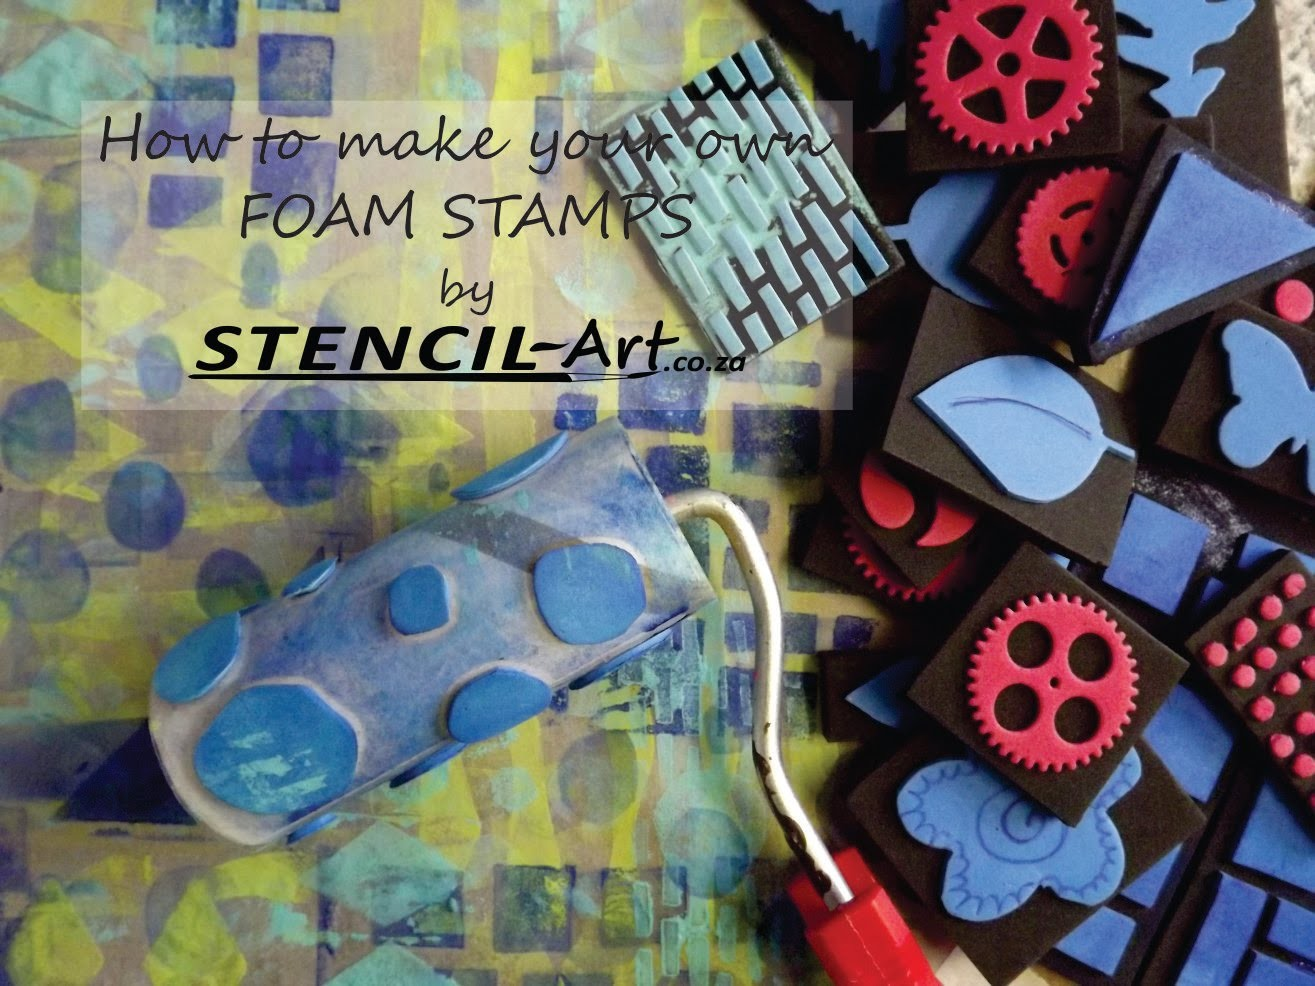 How to make your own foam stamps.